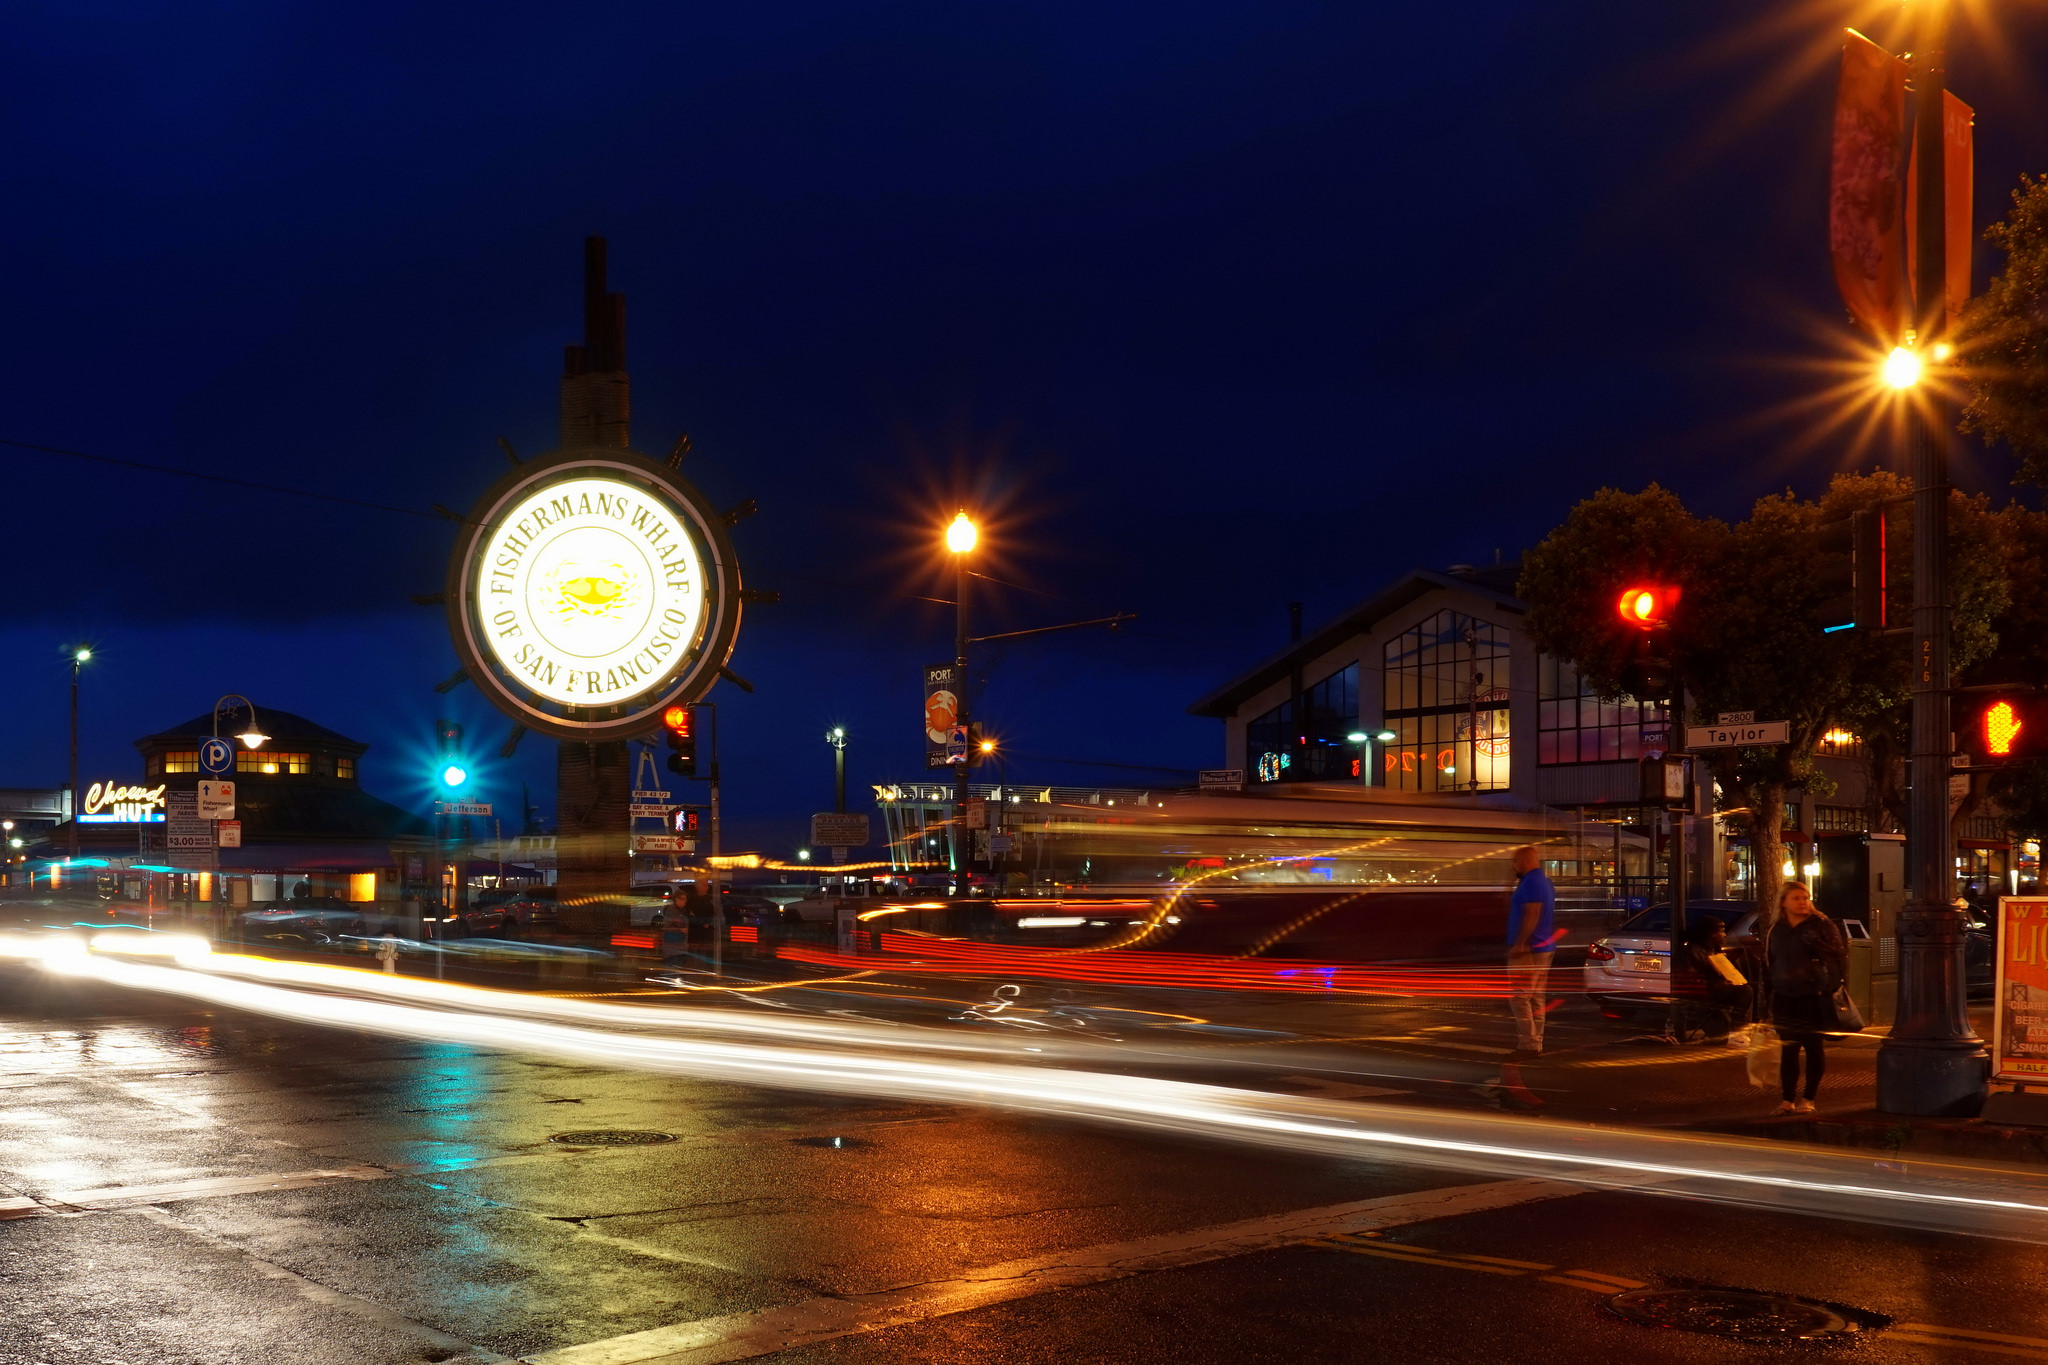 The Top 10 Bars In Fishermans Wharf, San Francisco-3708